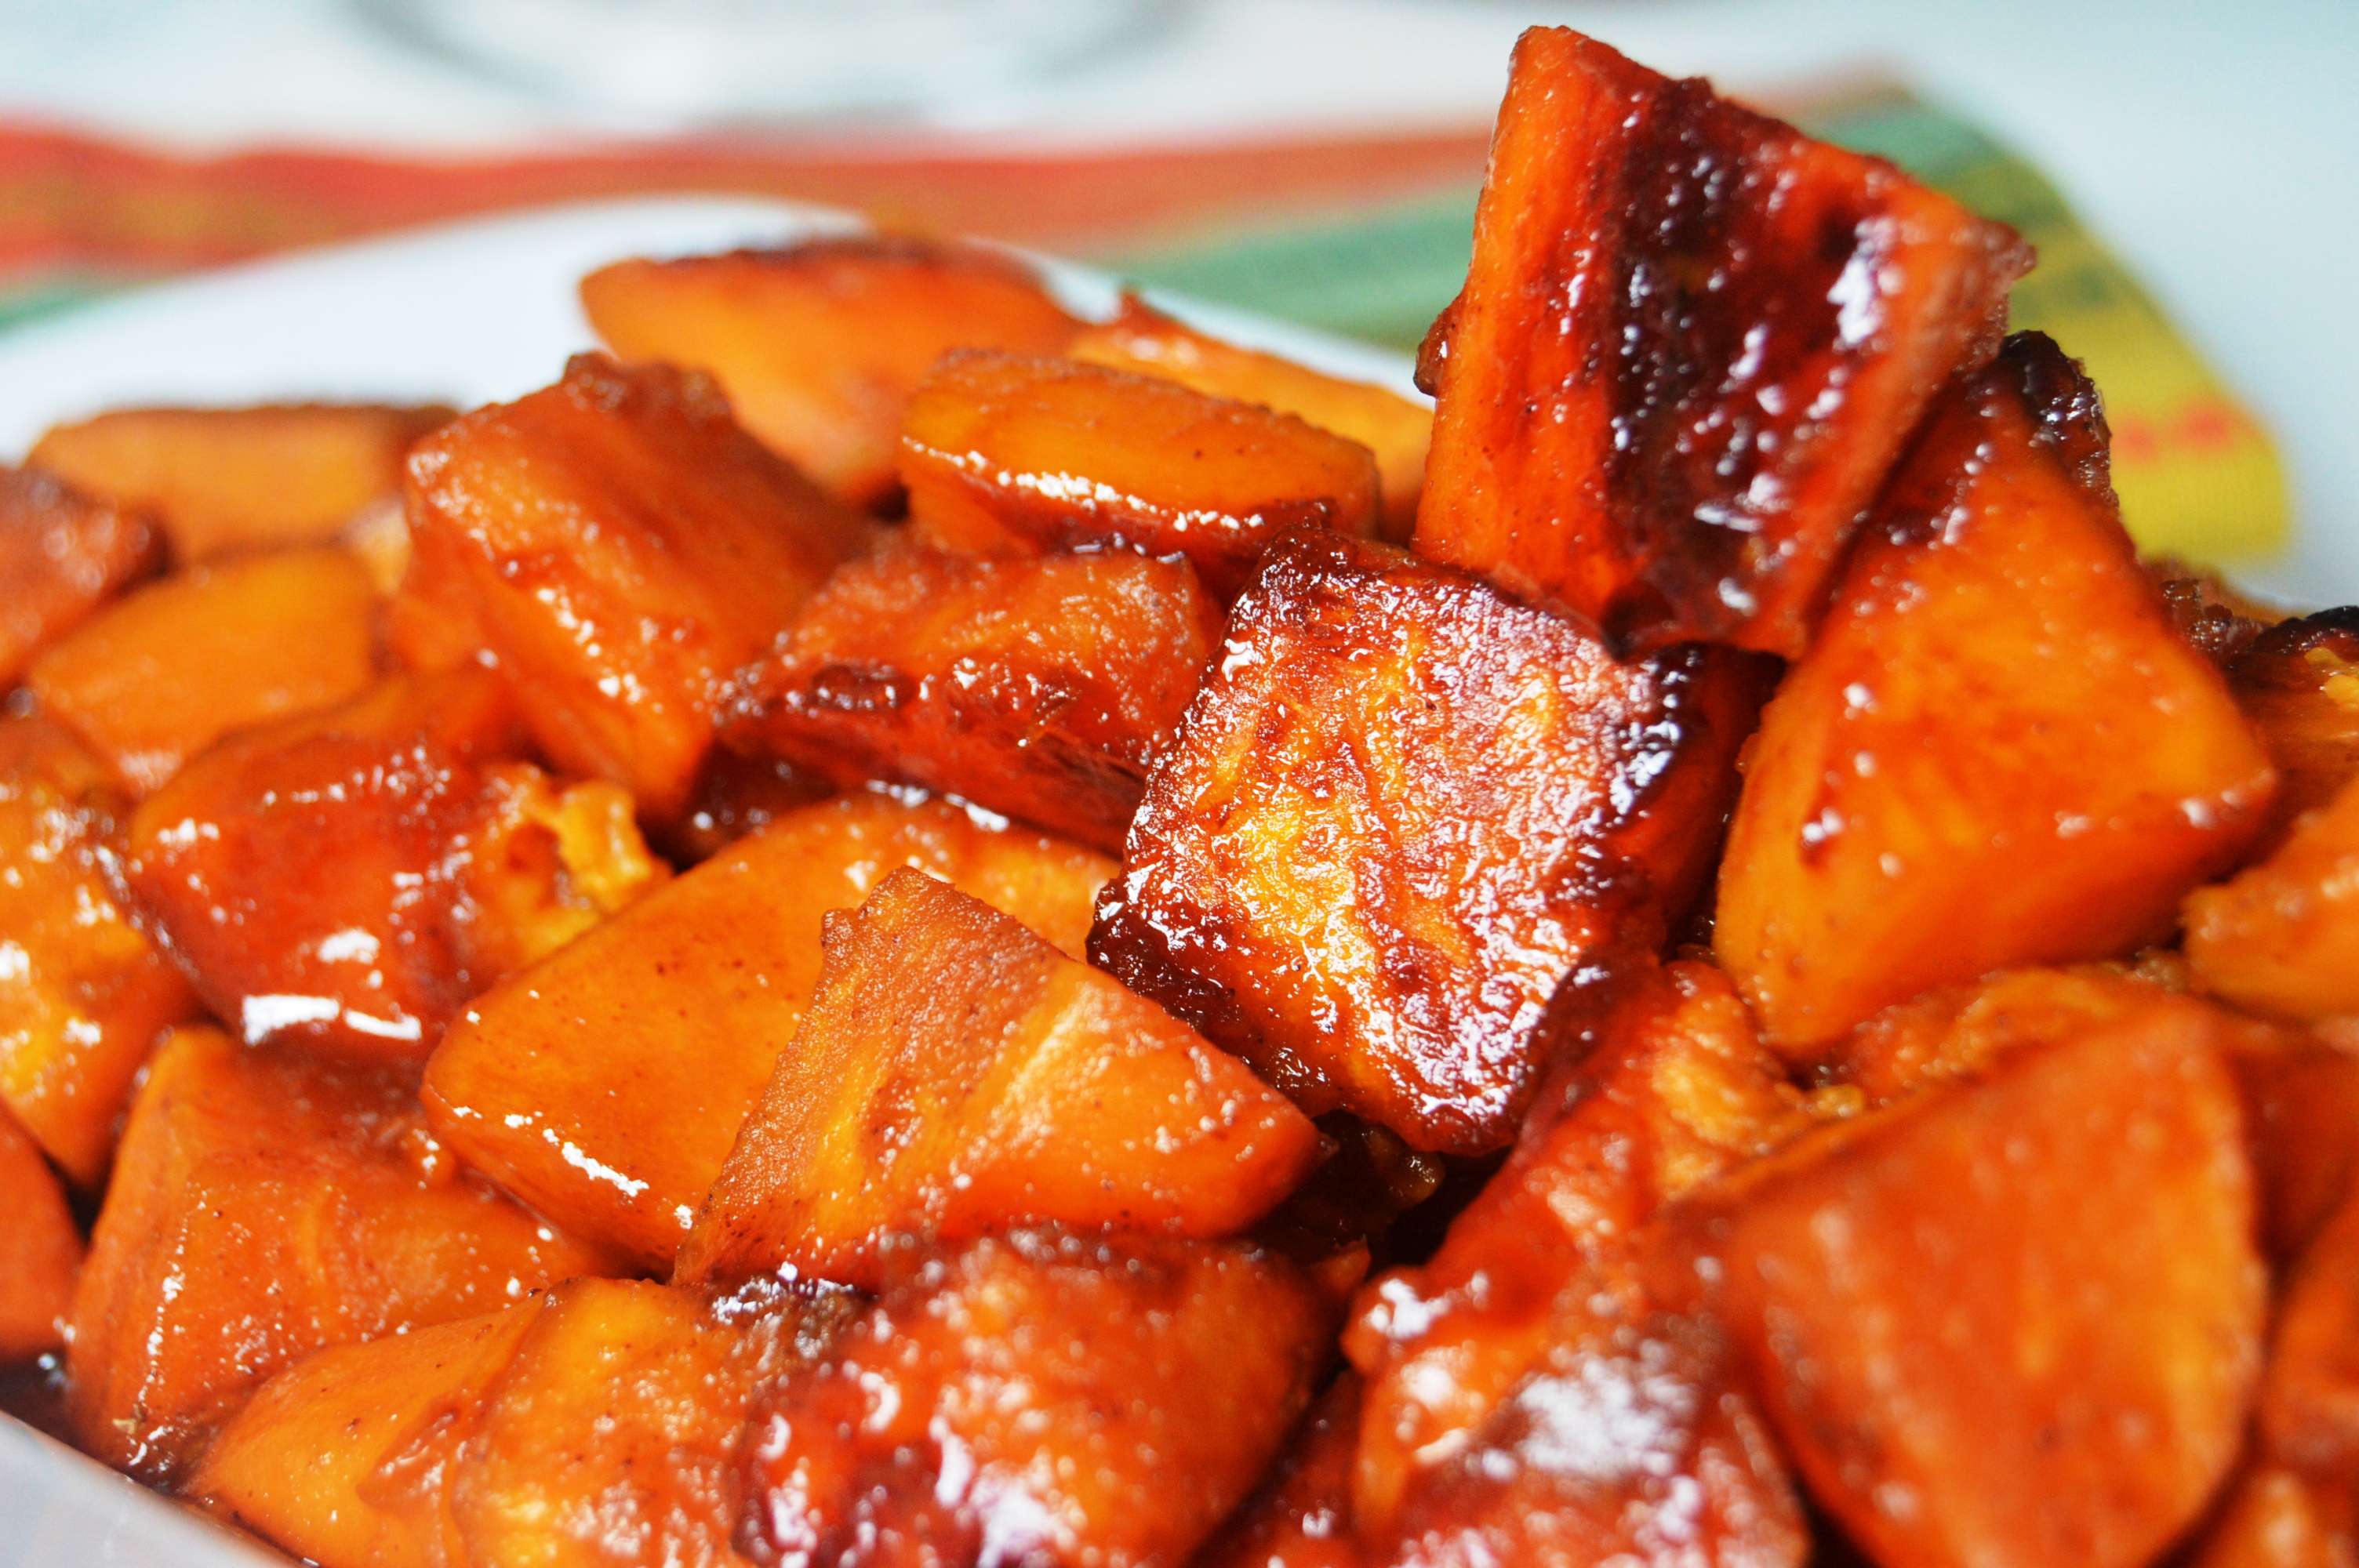 Best way to make candied yams